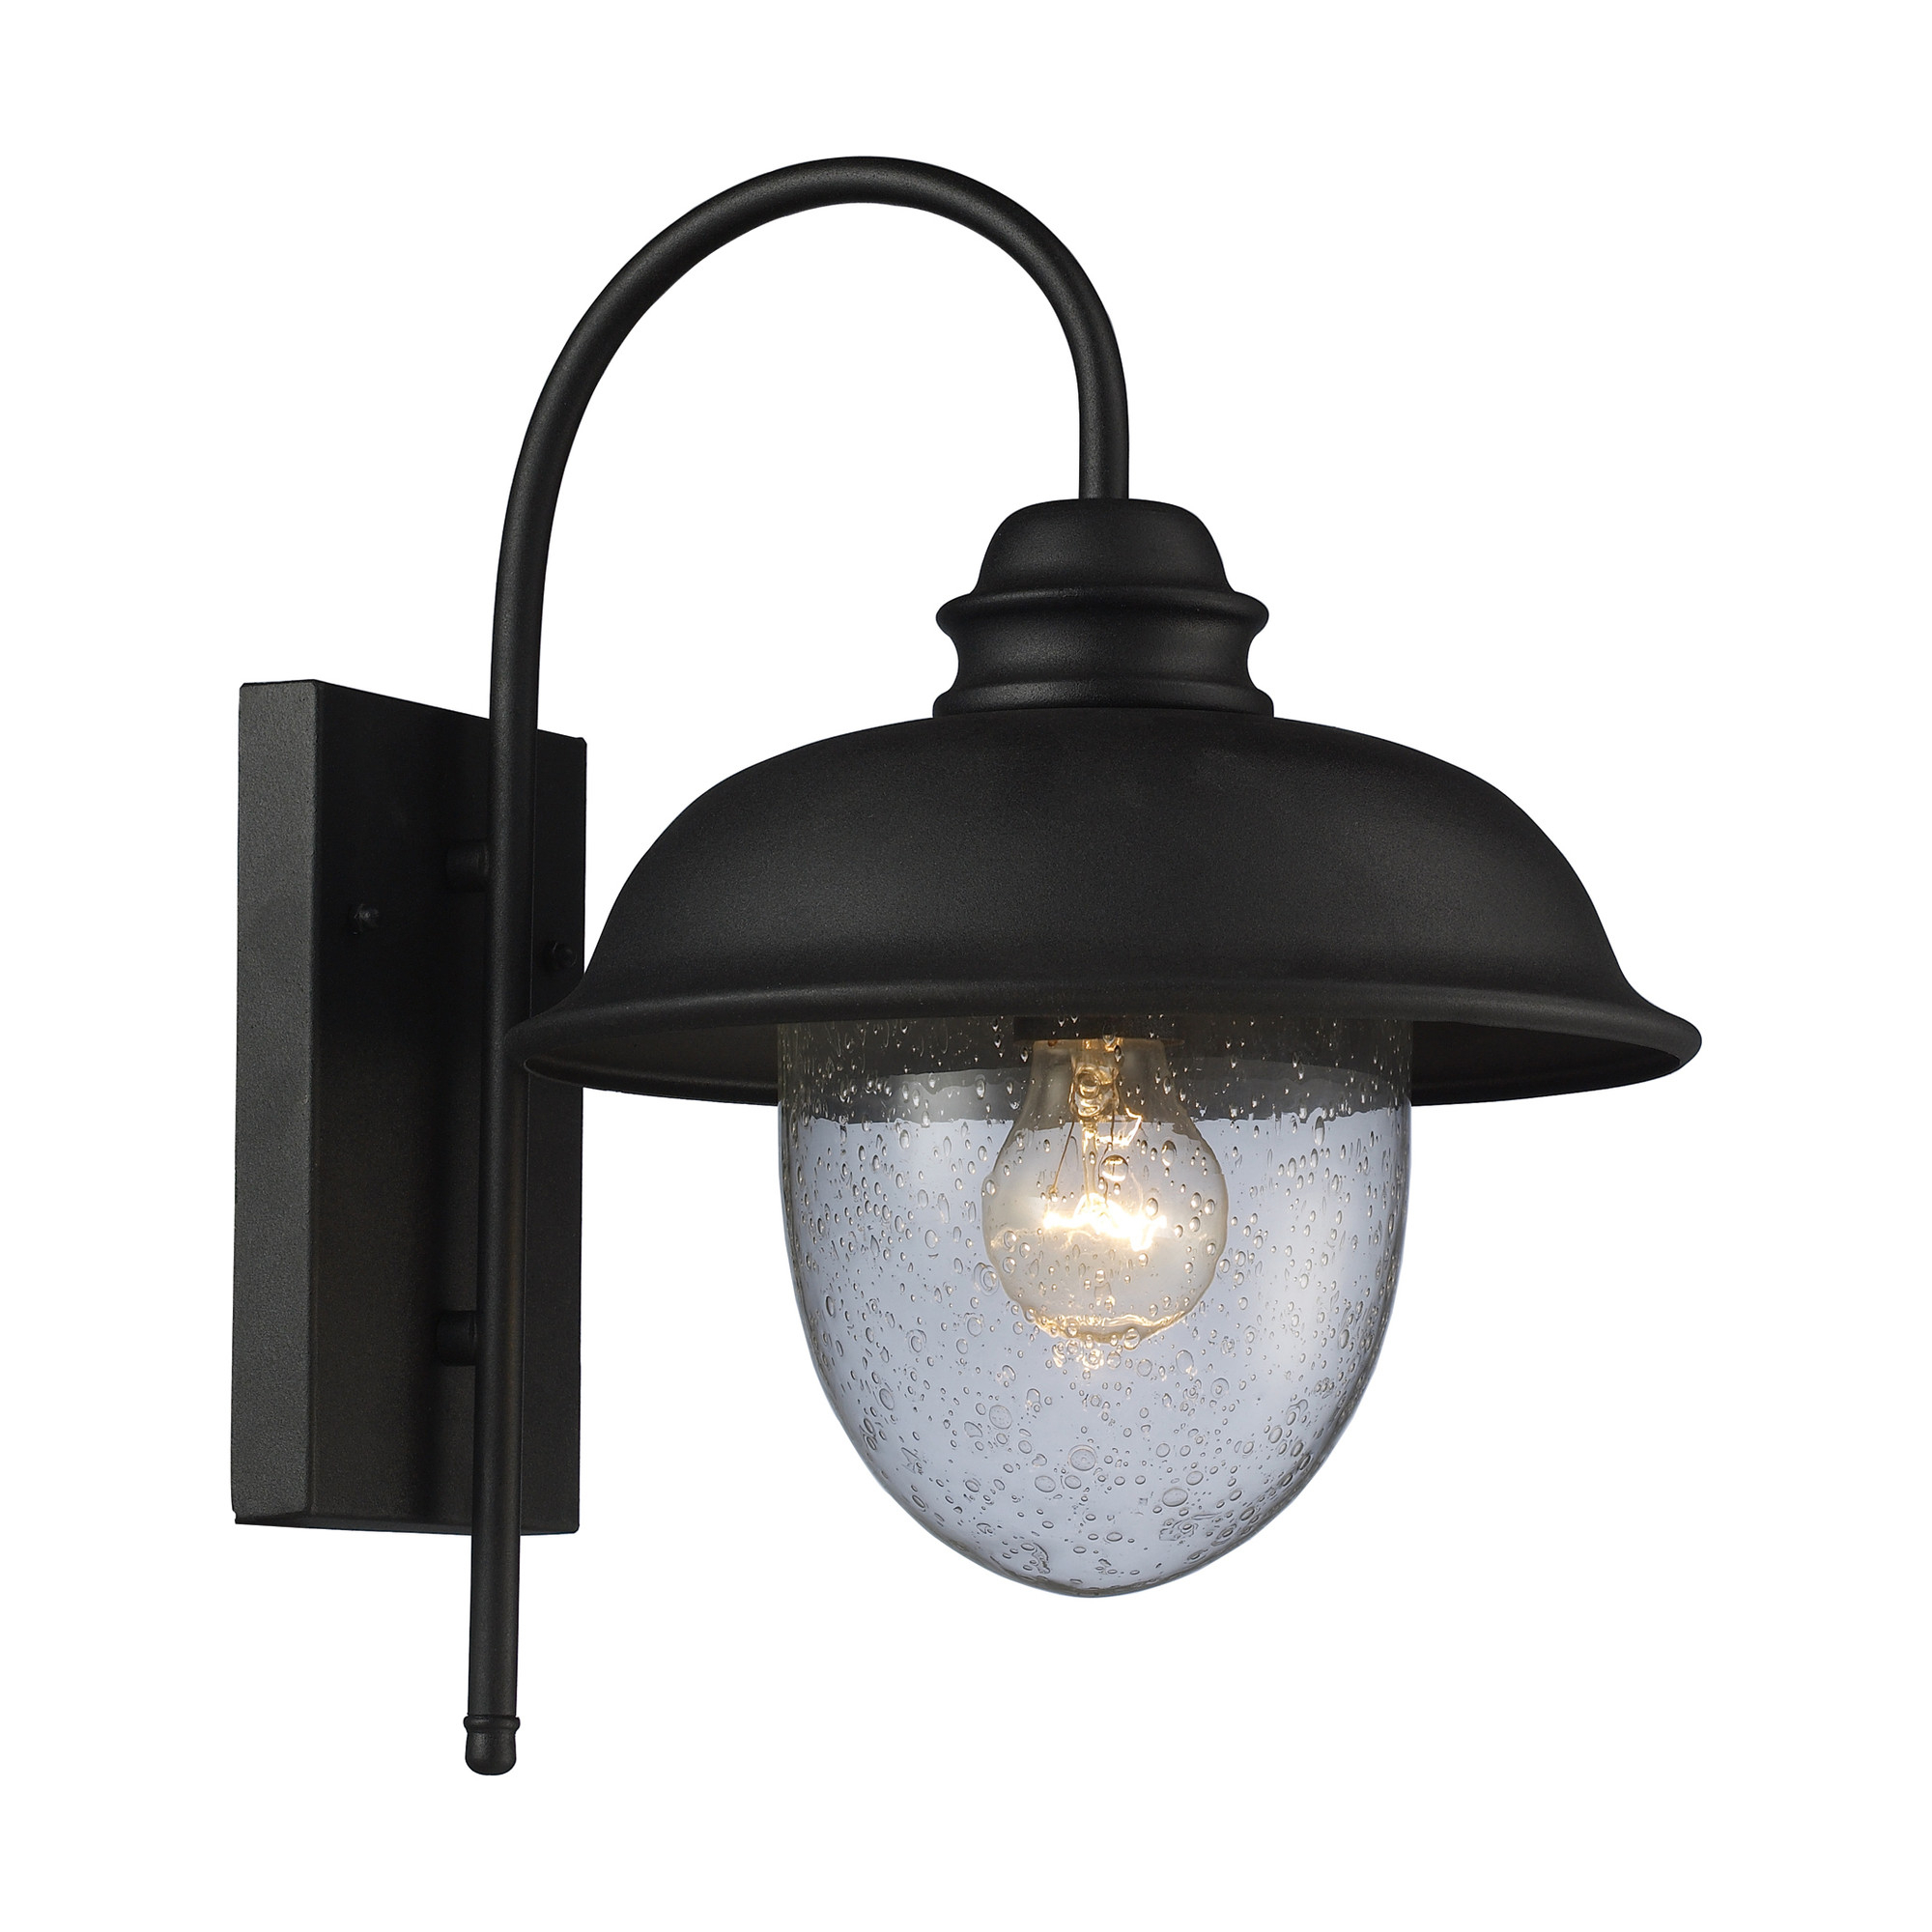 Most Recent Elk Lighting Streetside Cafe 1 Light Outdoor Wall Lantern With Bellefield Black Outdoor Wall Lanterns (View 10 of 20)